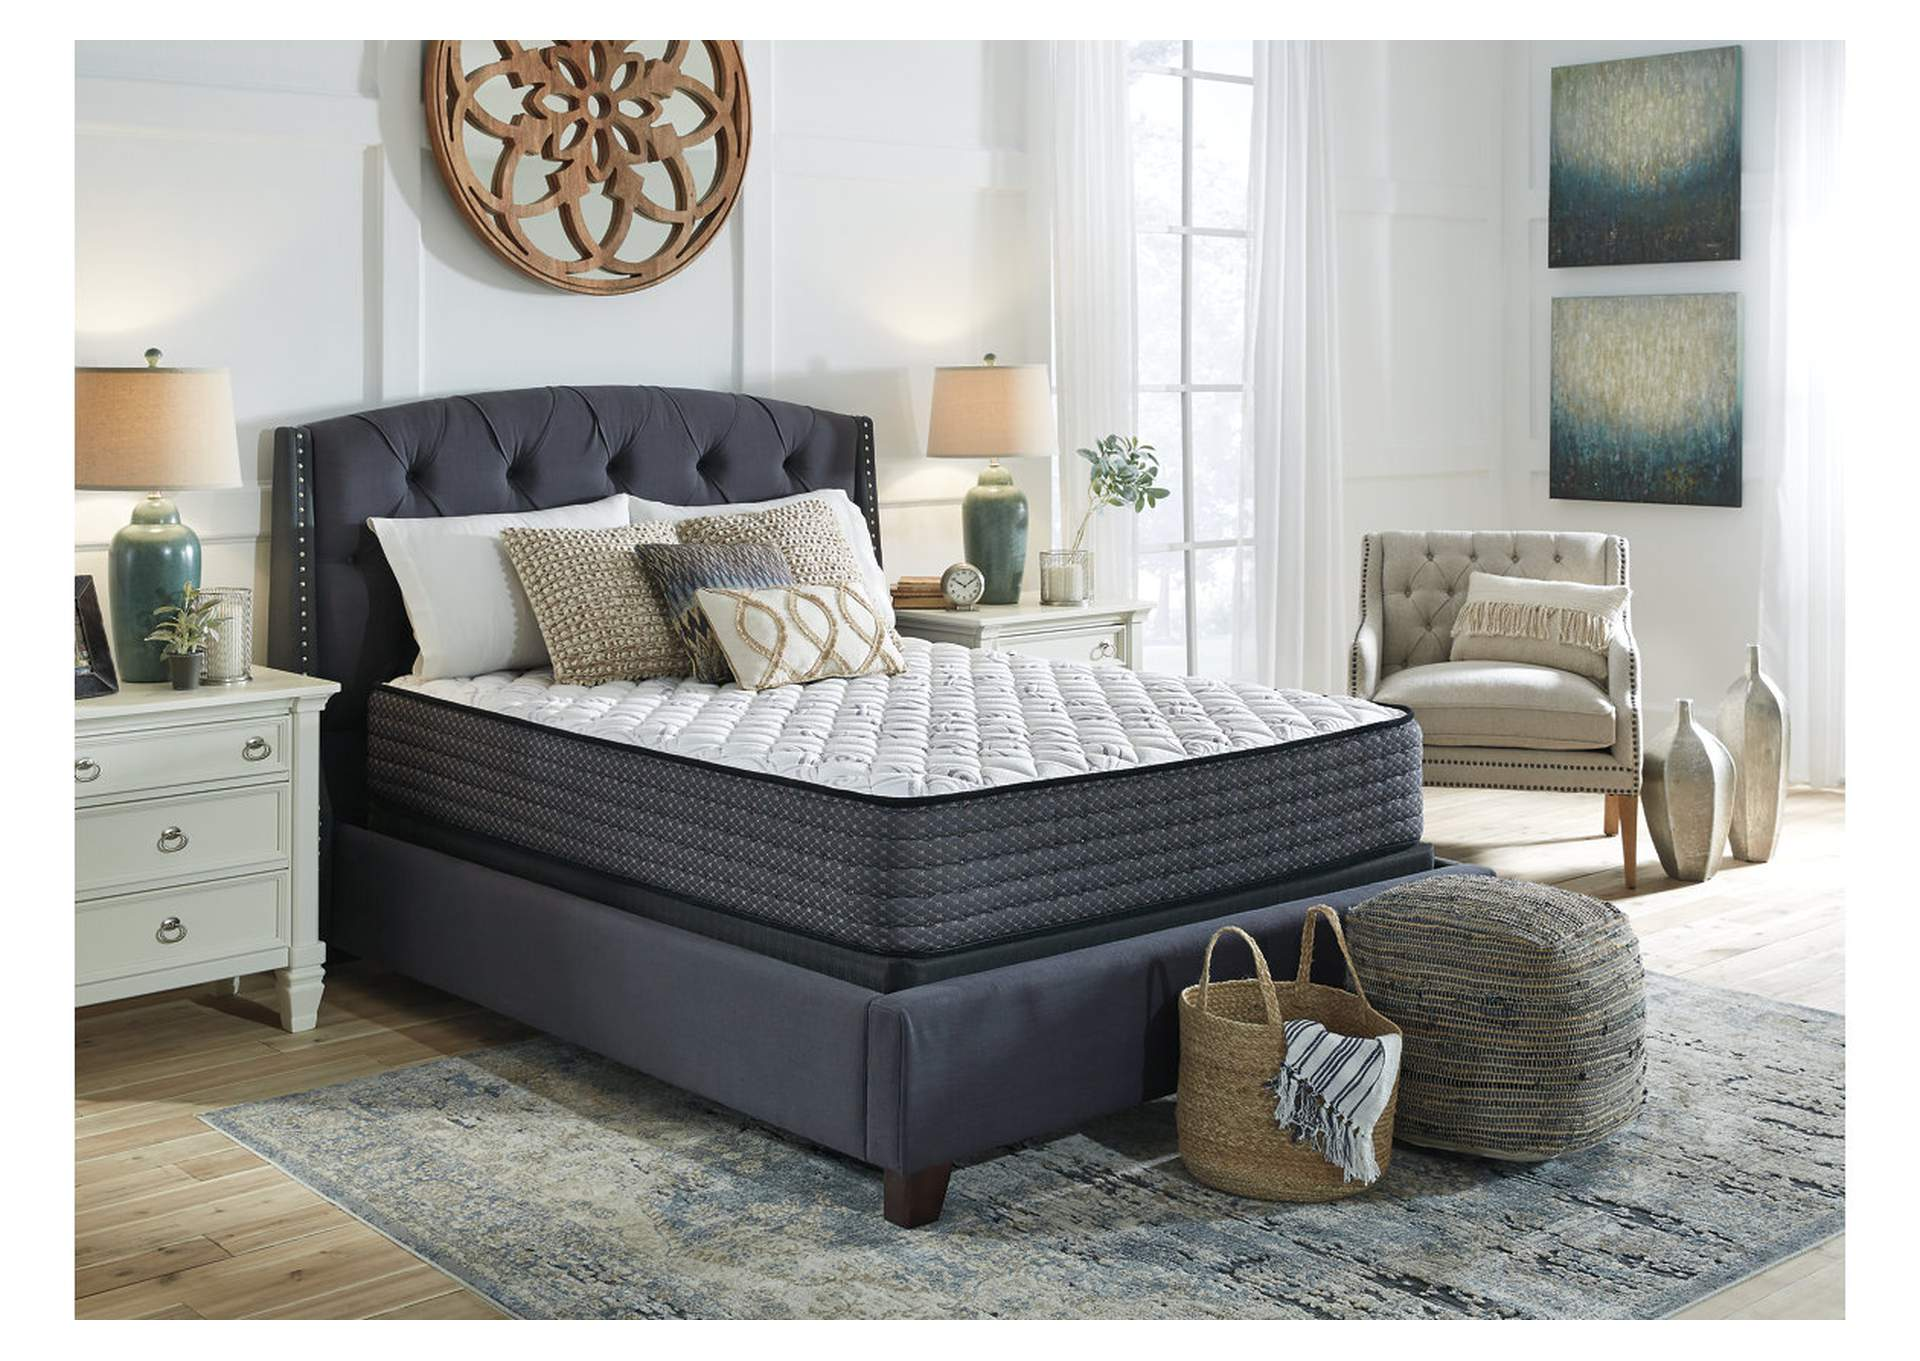 Limited Edition Firm King Mattress w/Foundation,Sierra Sleep by Ashley